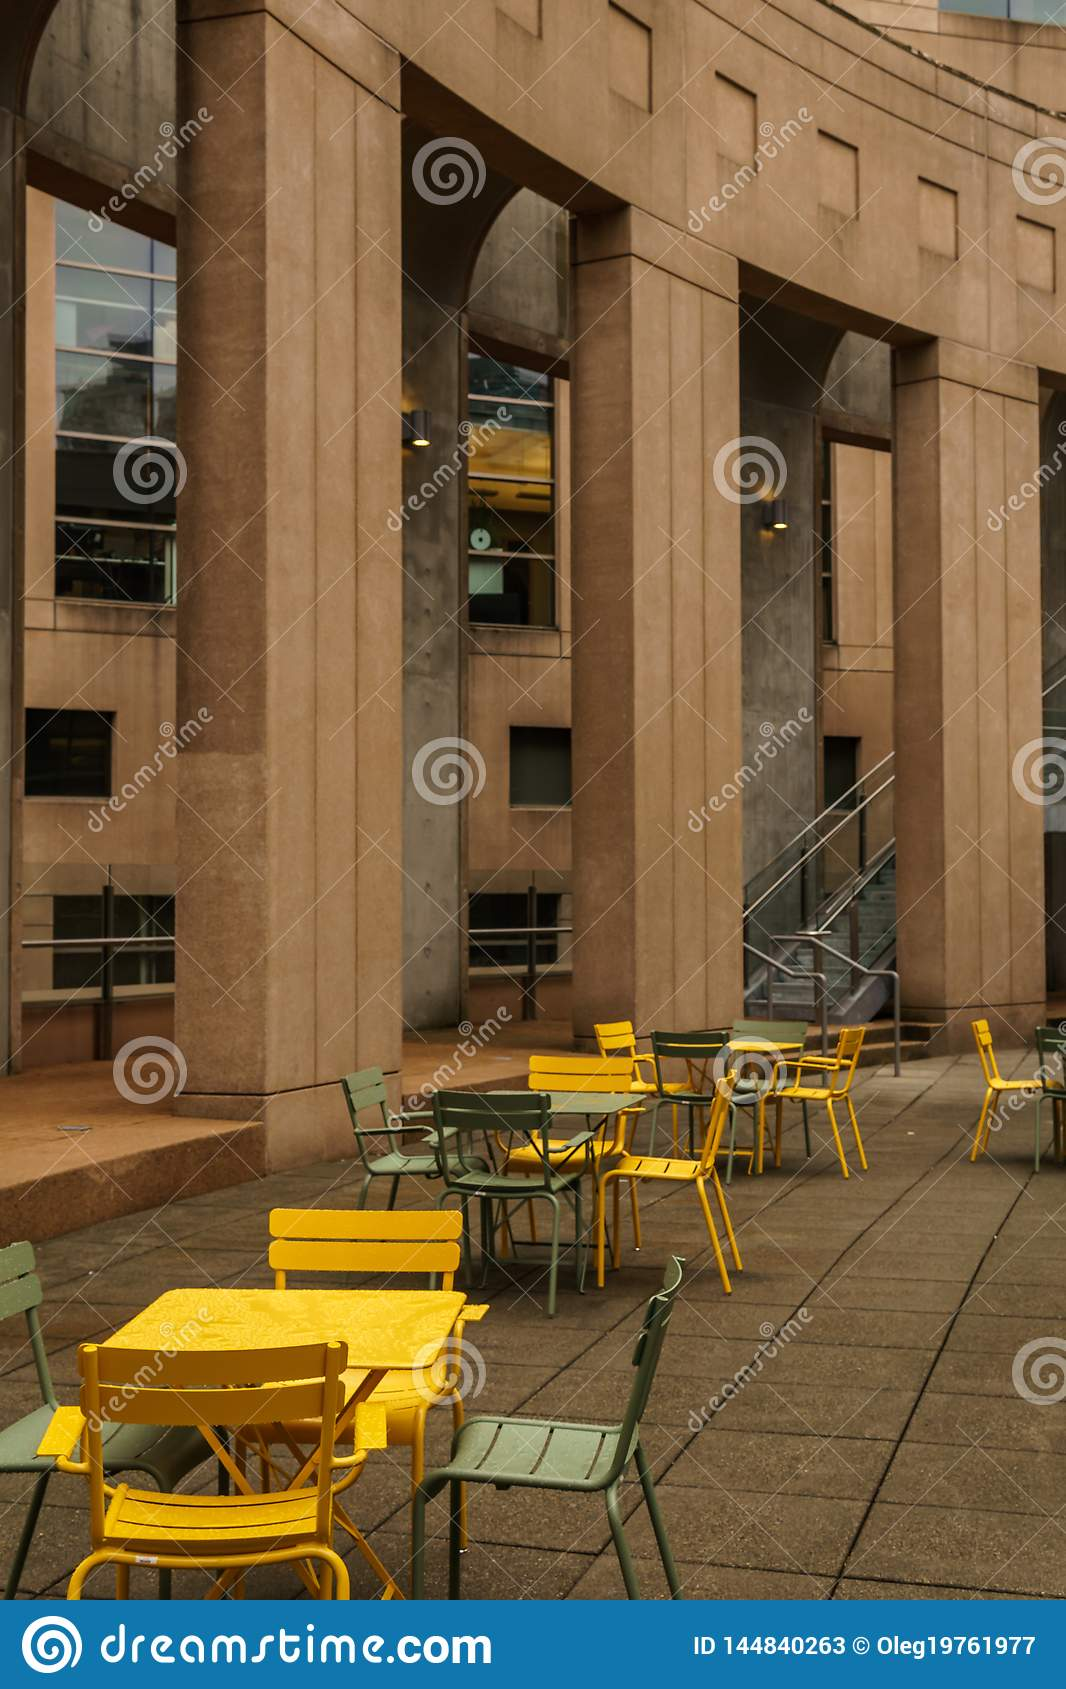 VANCOUVER, CANADA - October 5, 2018: rest zone in the central library with concrete columns armchairs and metal tables